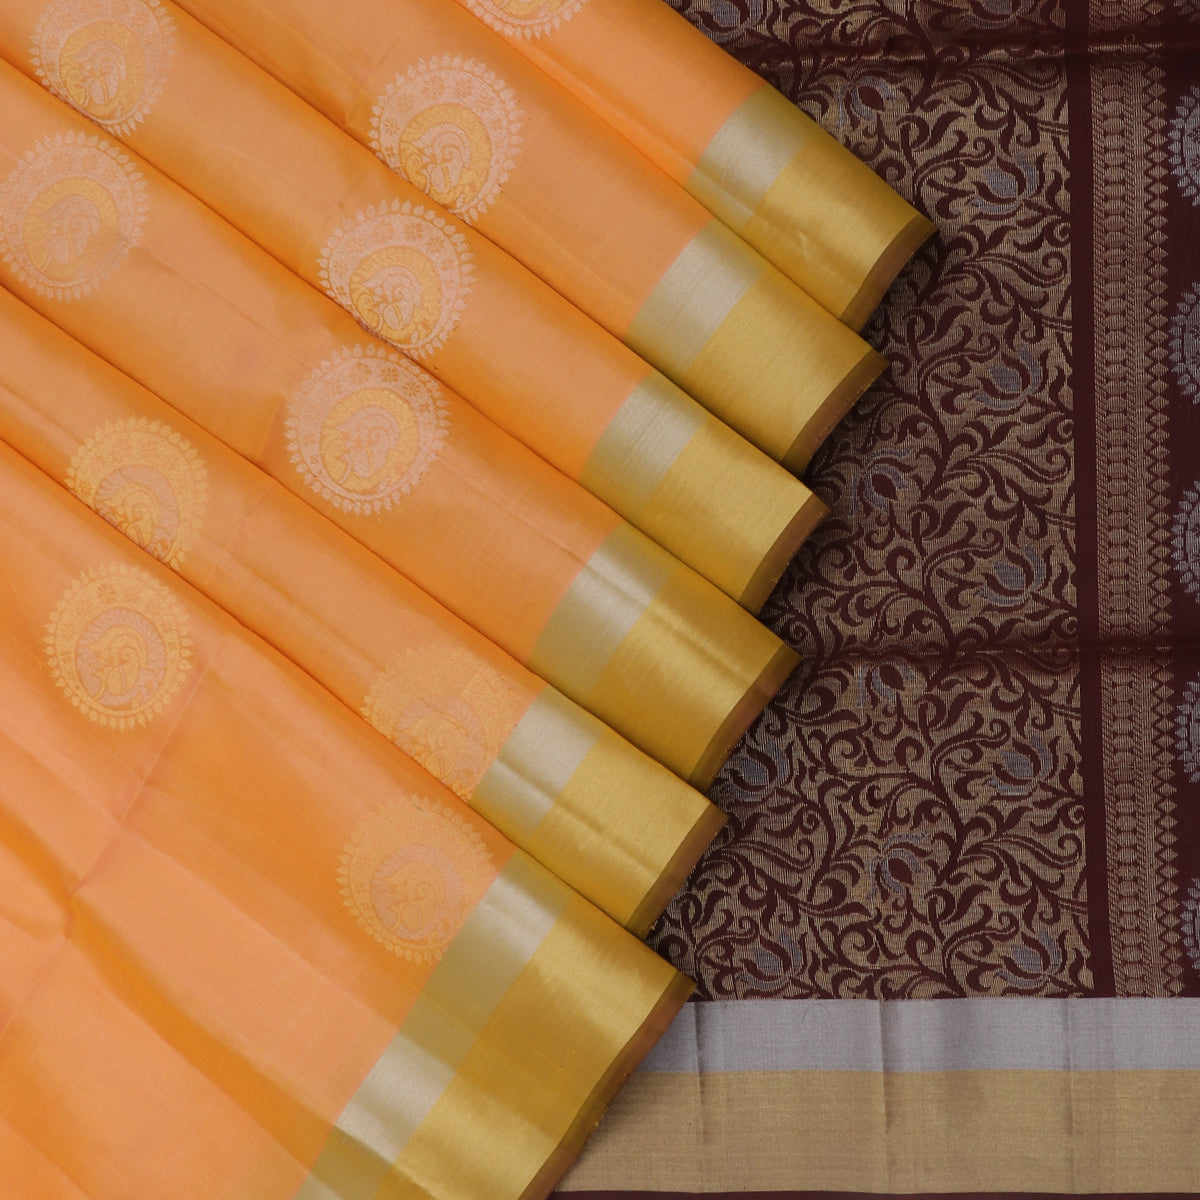 Soft Silk Saree Tangerine Orange with buttas and Maroon with Zari border